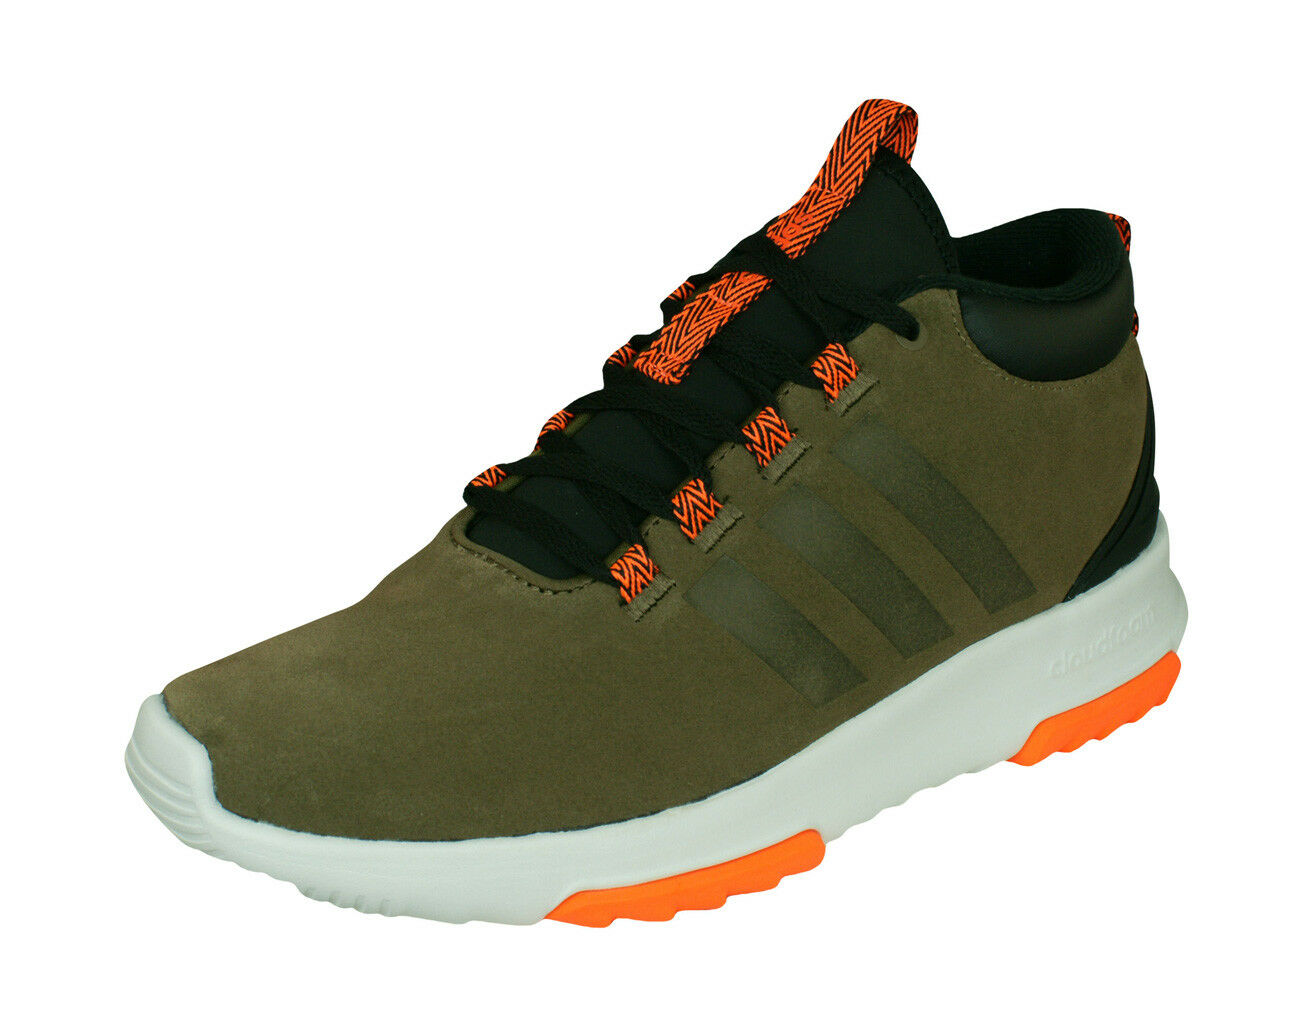 Adidas Neo CF Racer Mid WTR Mens Suede Sneakers Casual shoes - Dark Green